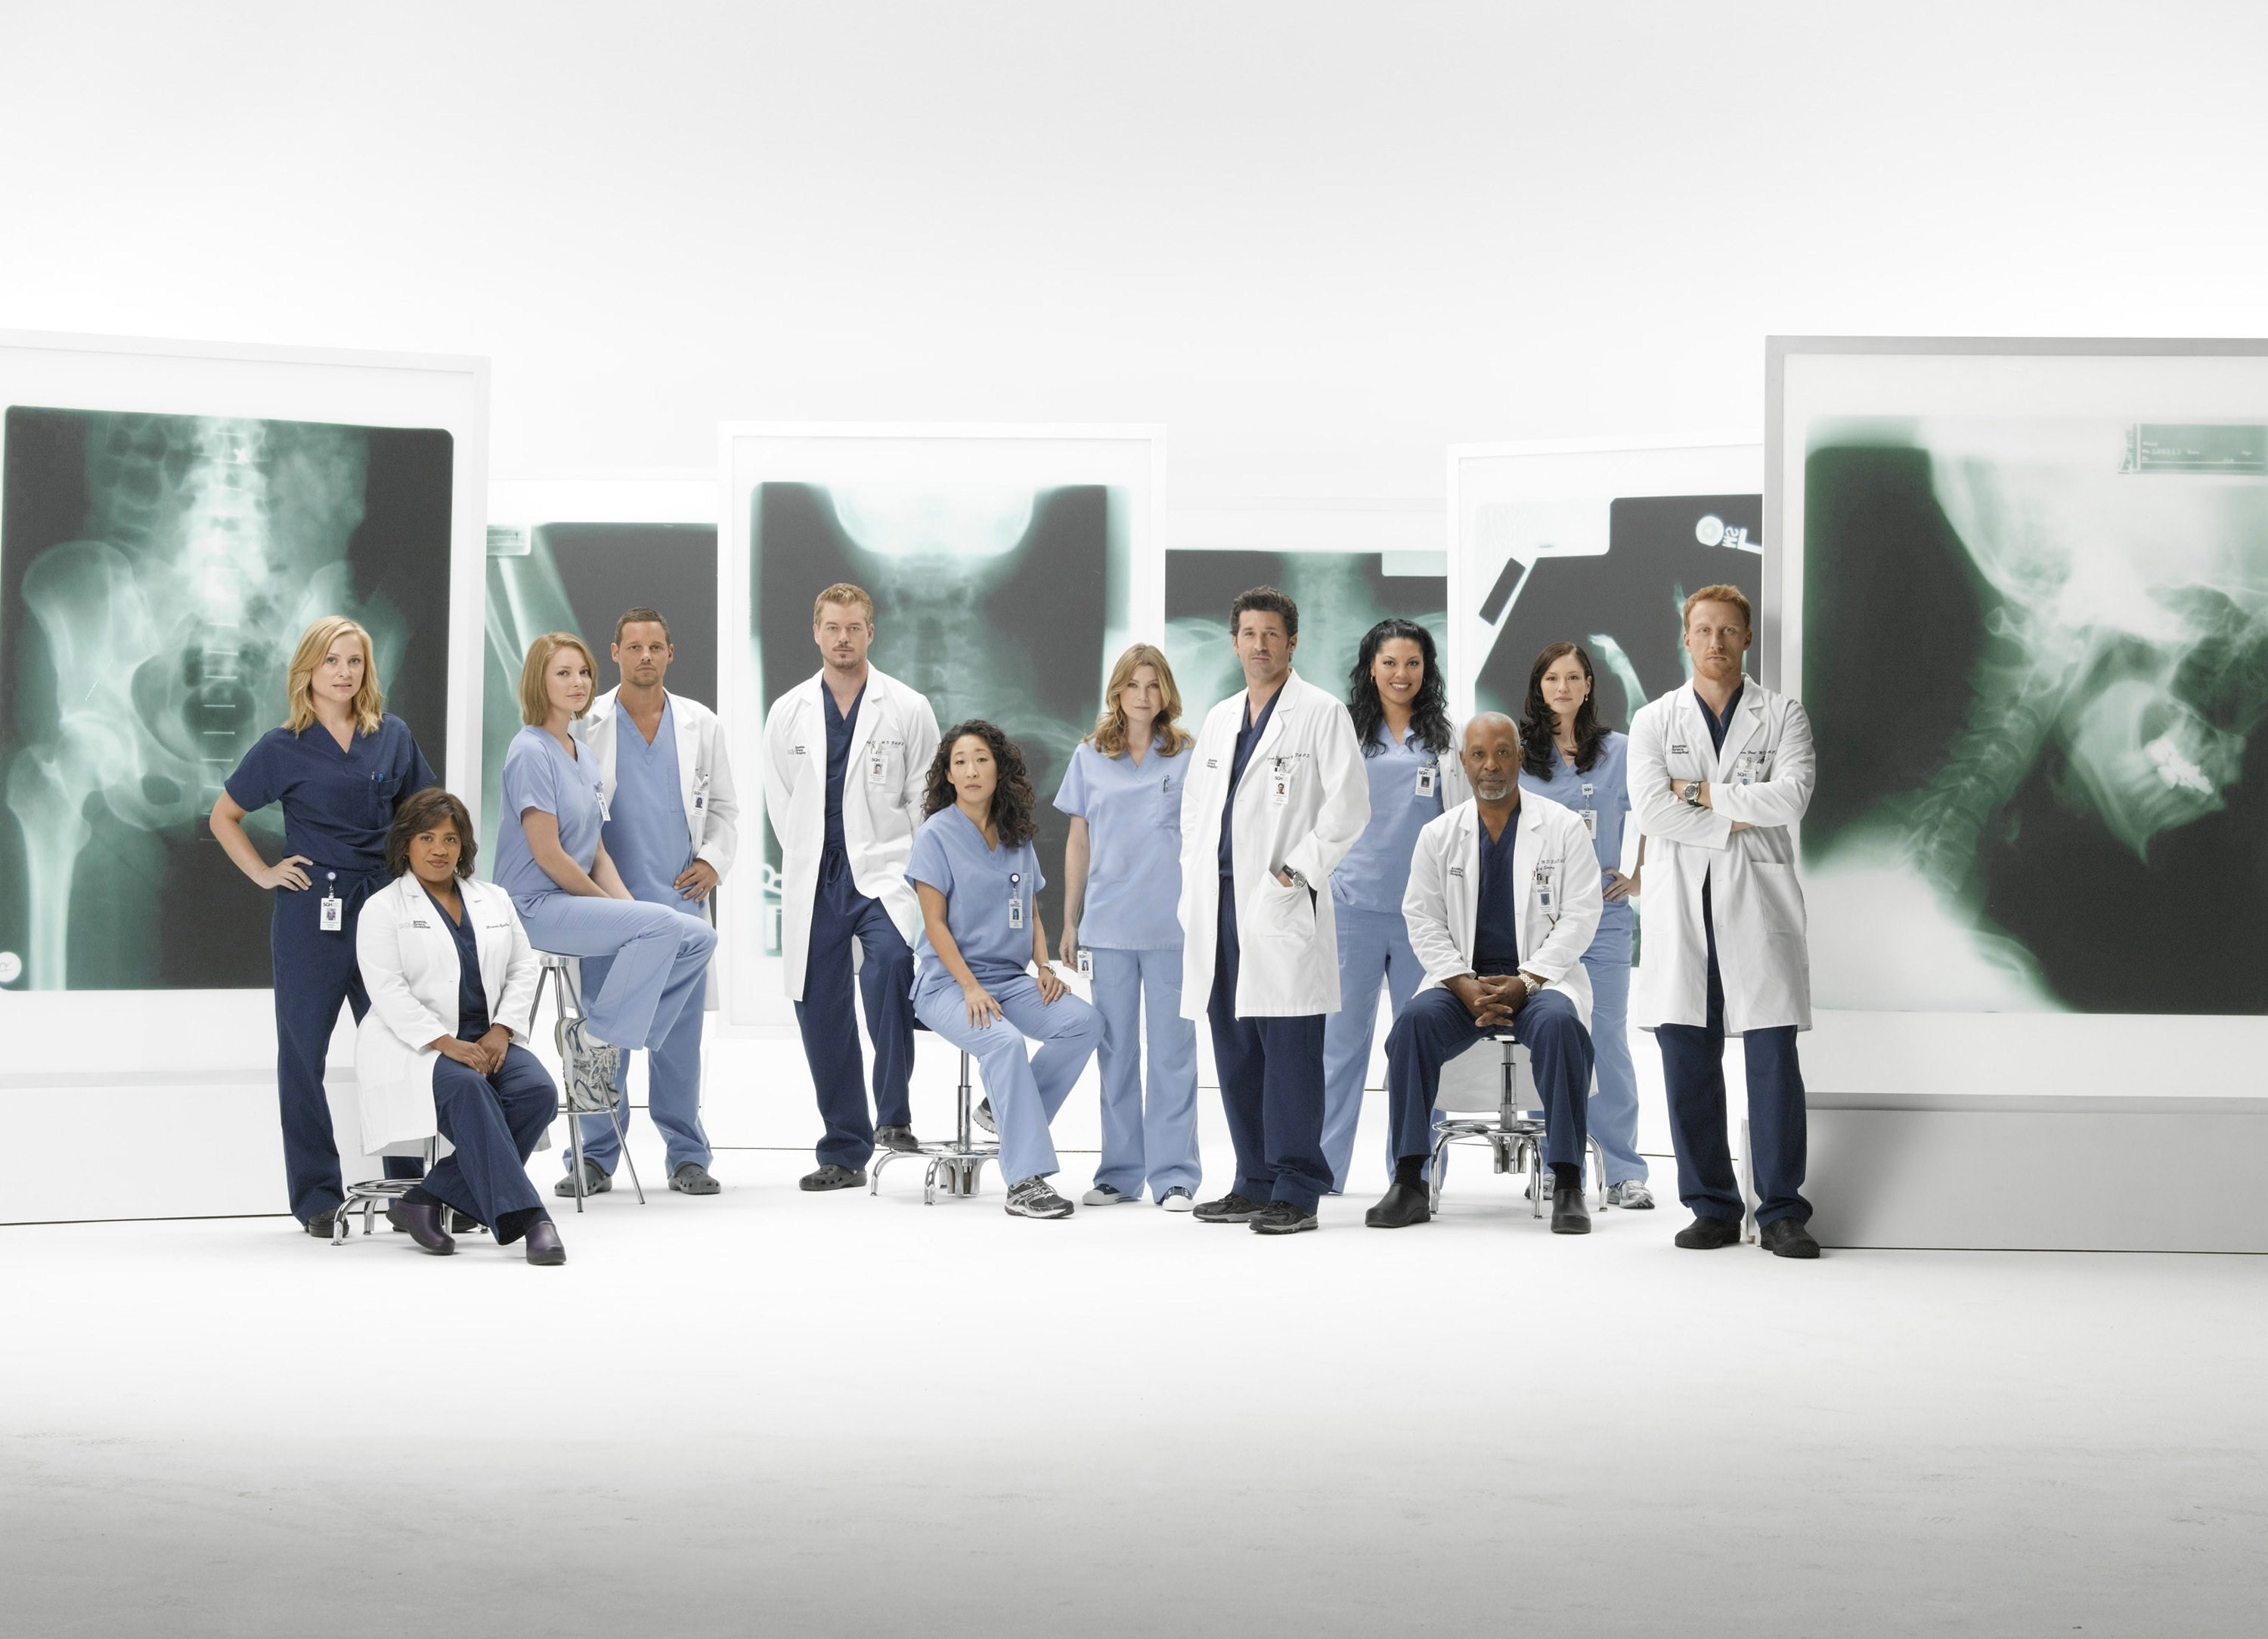 Famous Greys Anatomy Episode Guide Wiki Motif - Human Anatomy Images ...